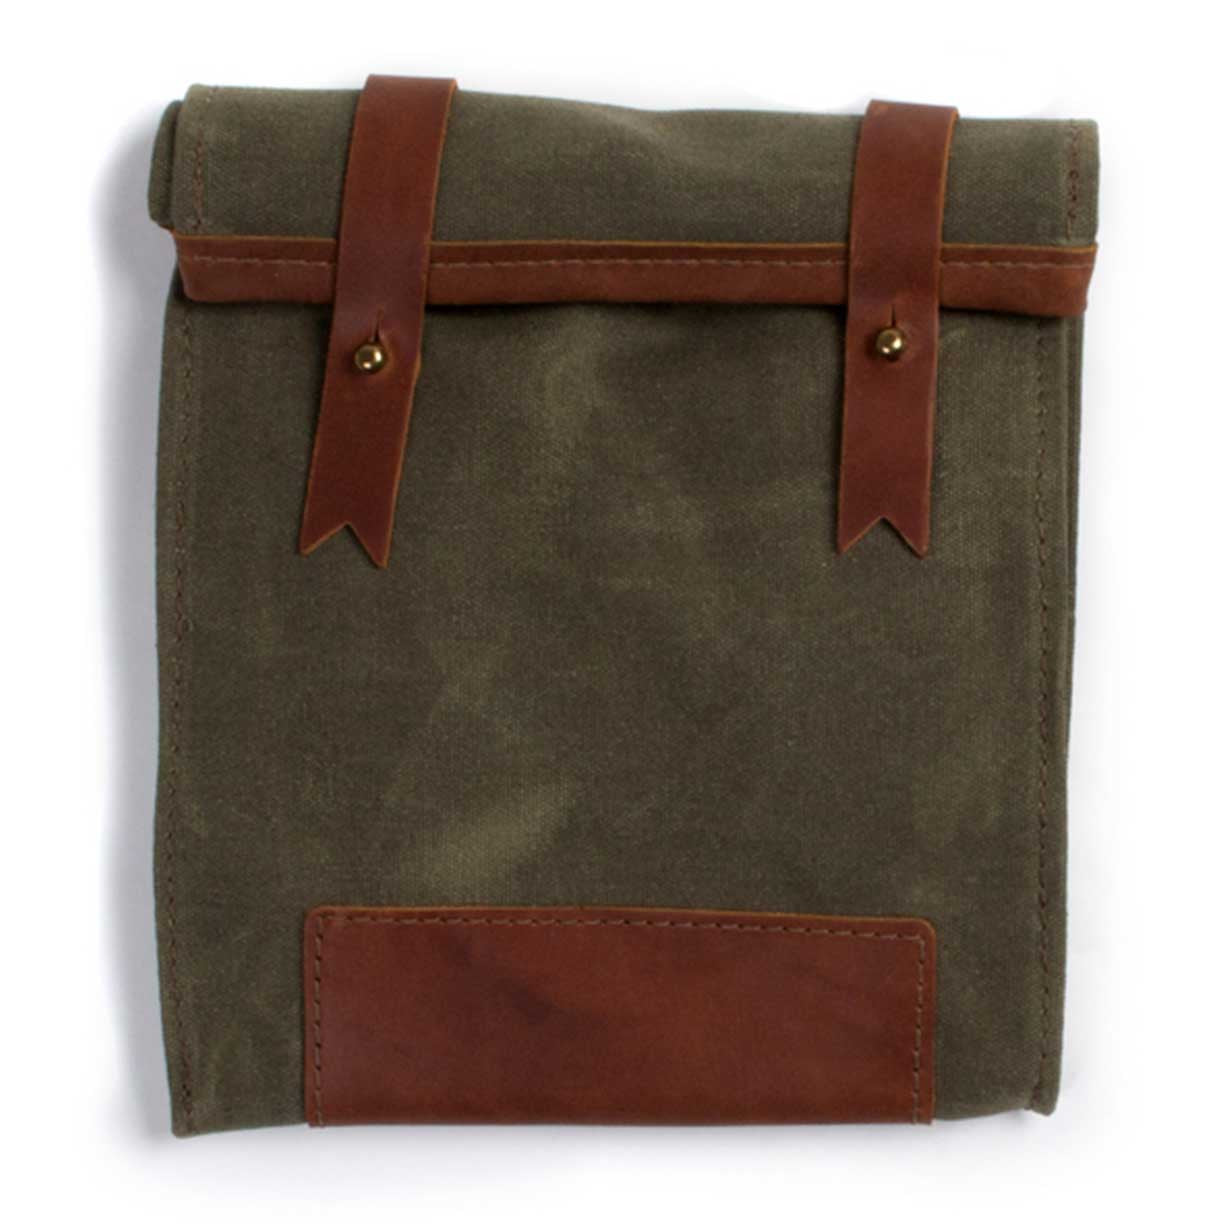 Wayfarer Waxed Canvas Lunch Bag, Saddle Leather with Olive Green